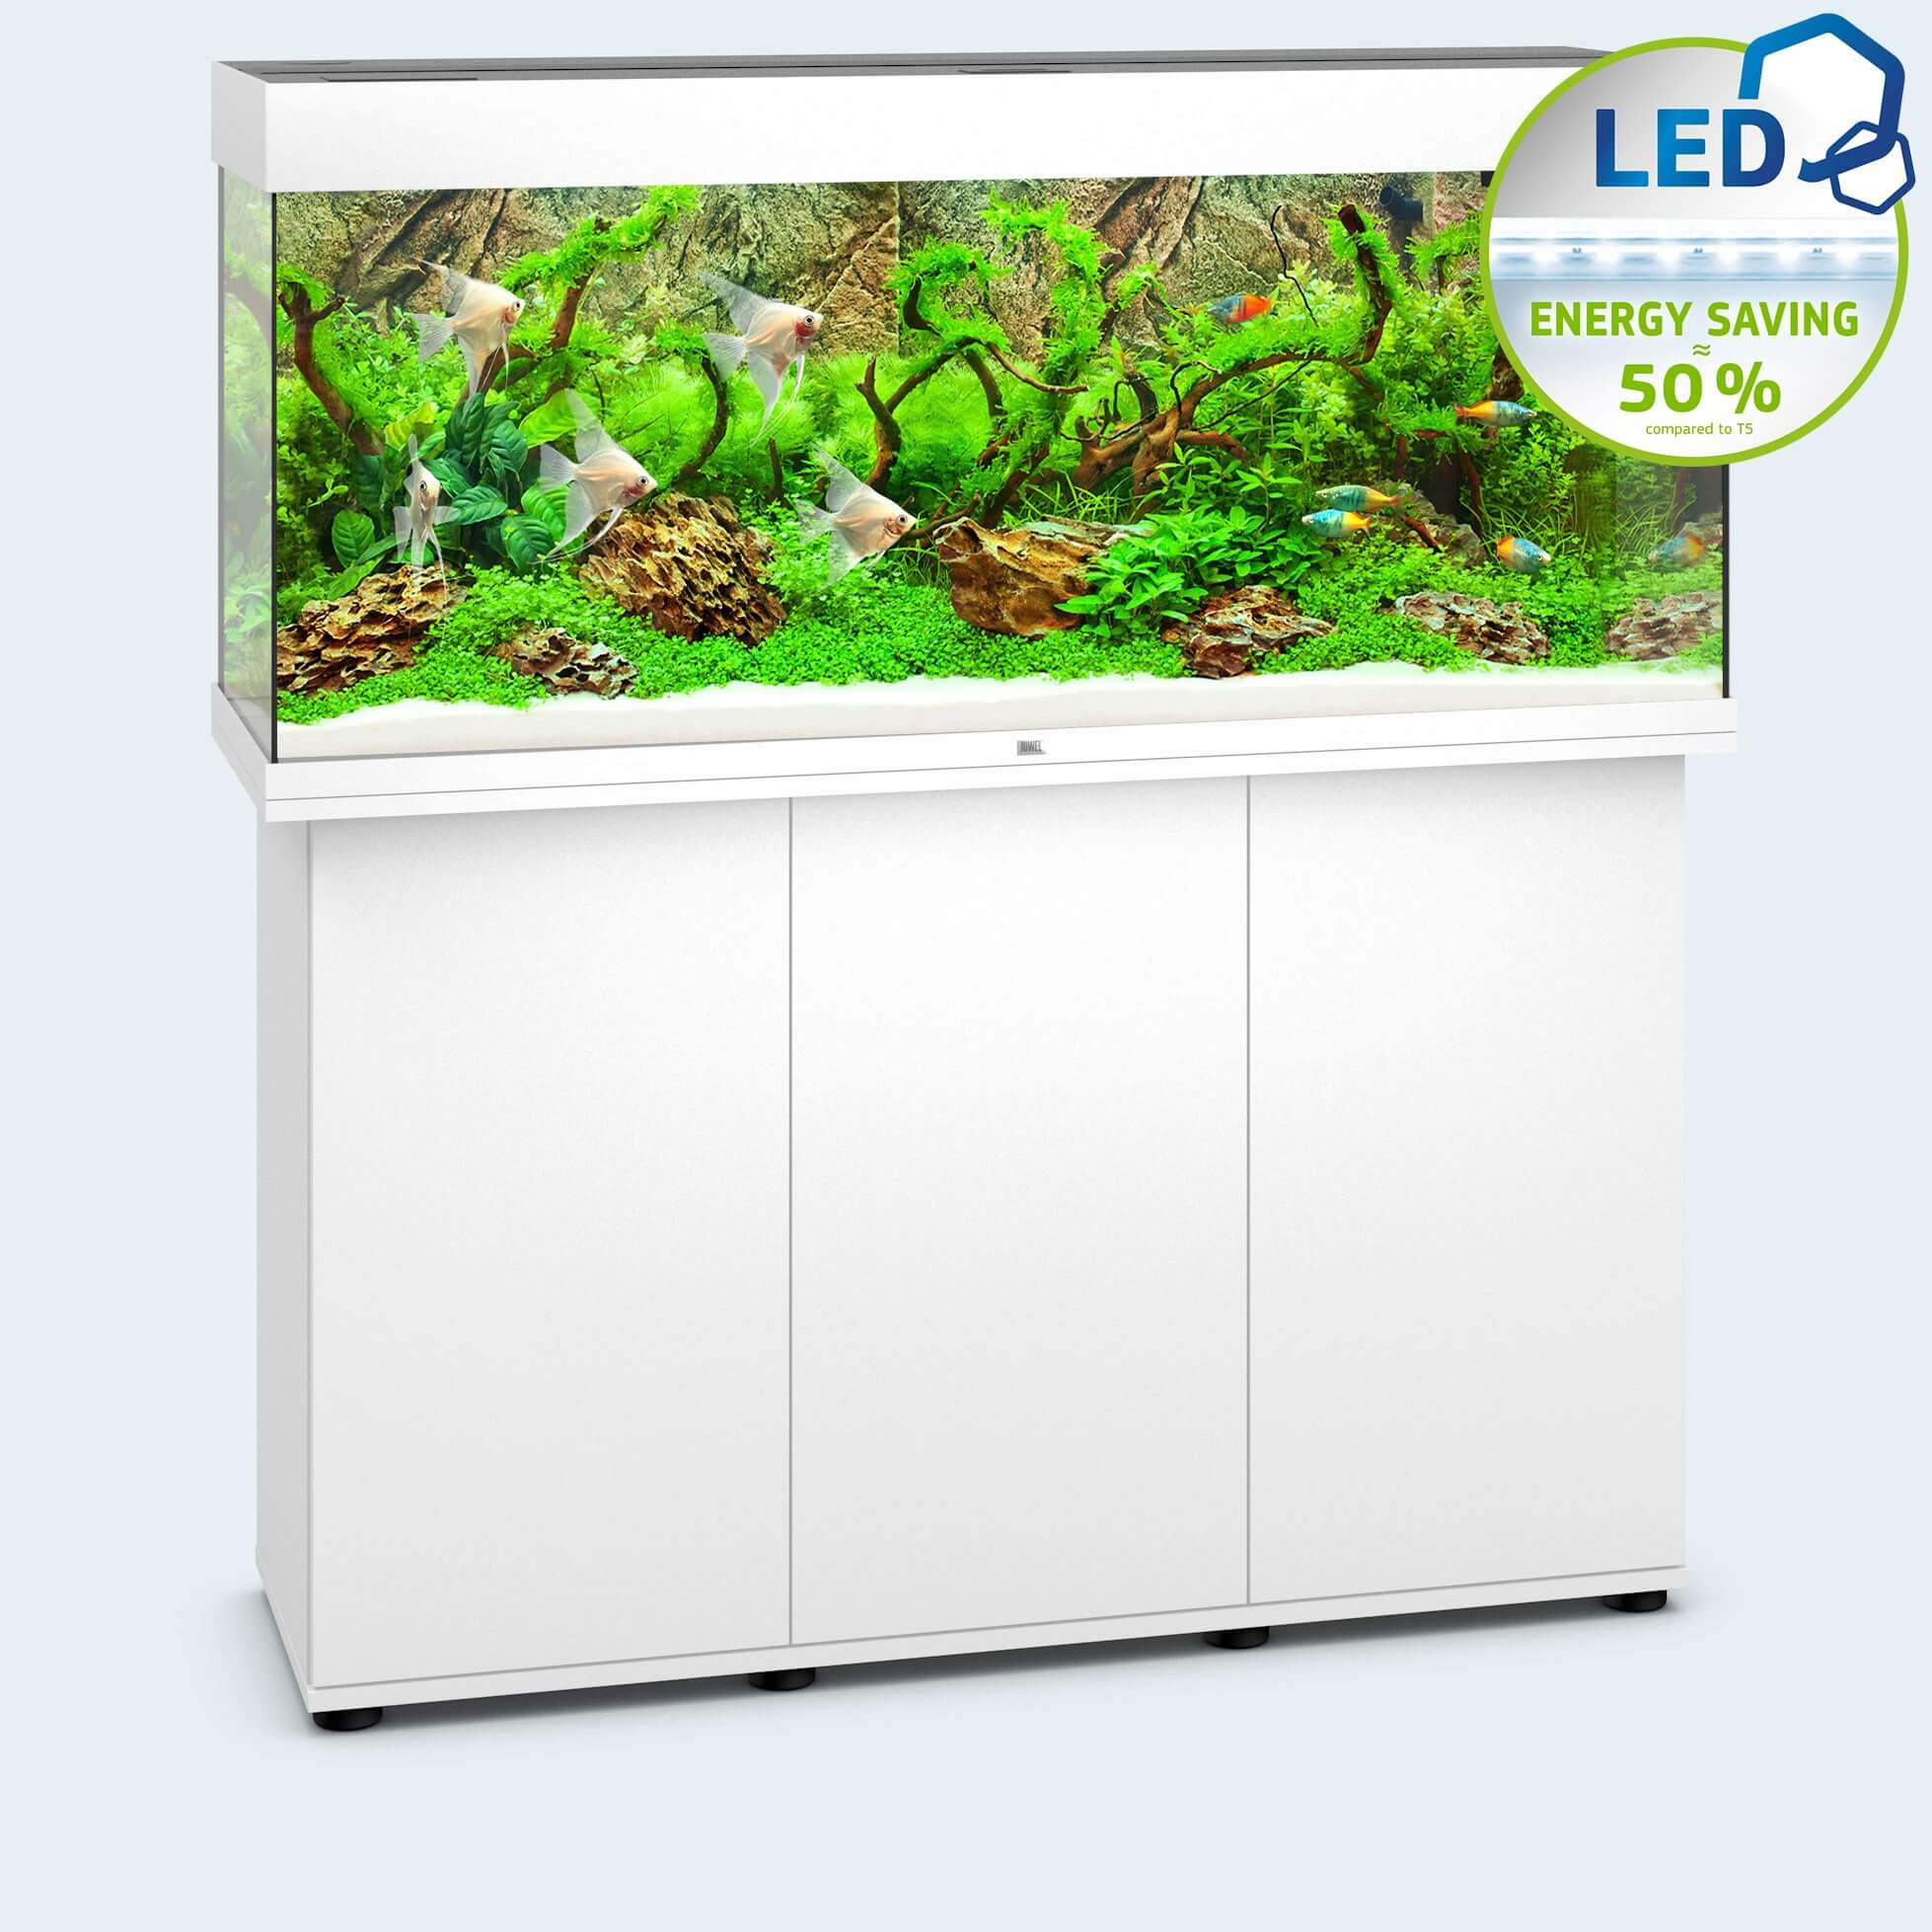 aquarium-juwel-rio-240-led-blanc Frais De Aquarium Table Basse Pas Cher